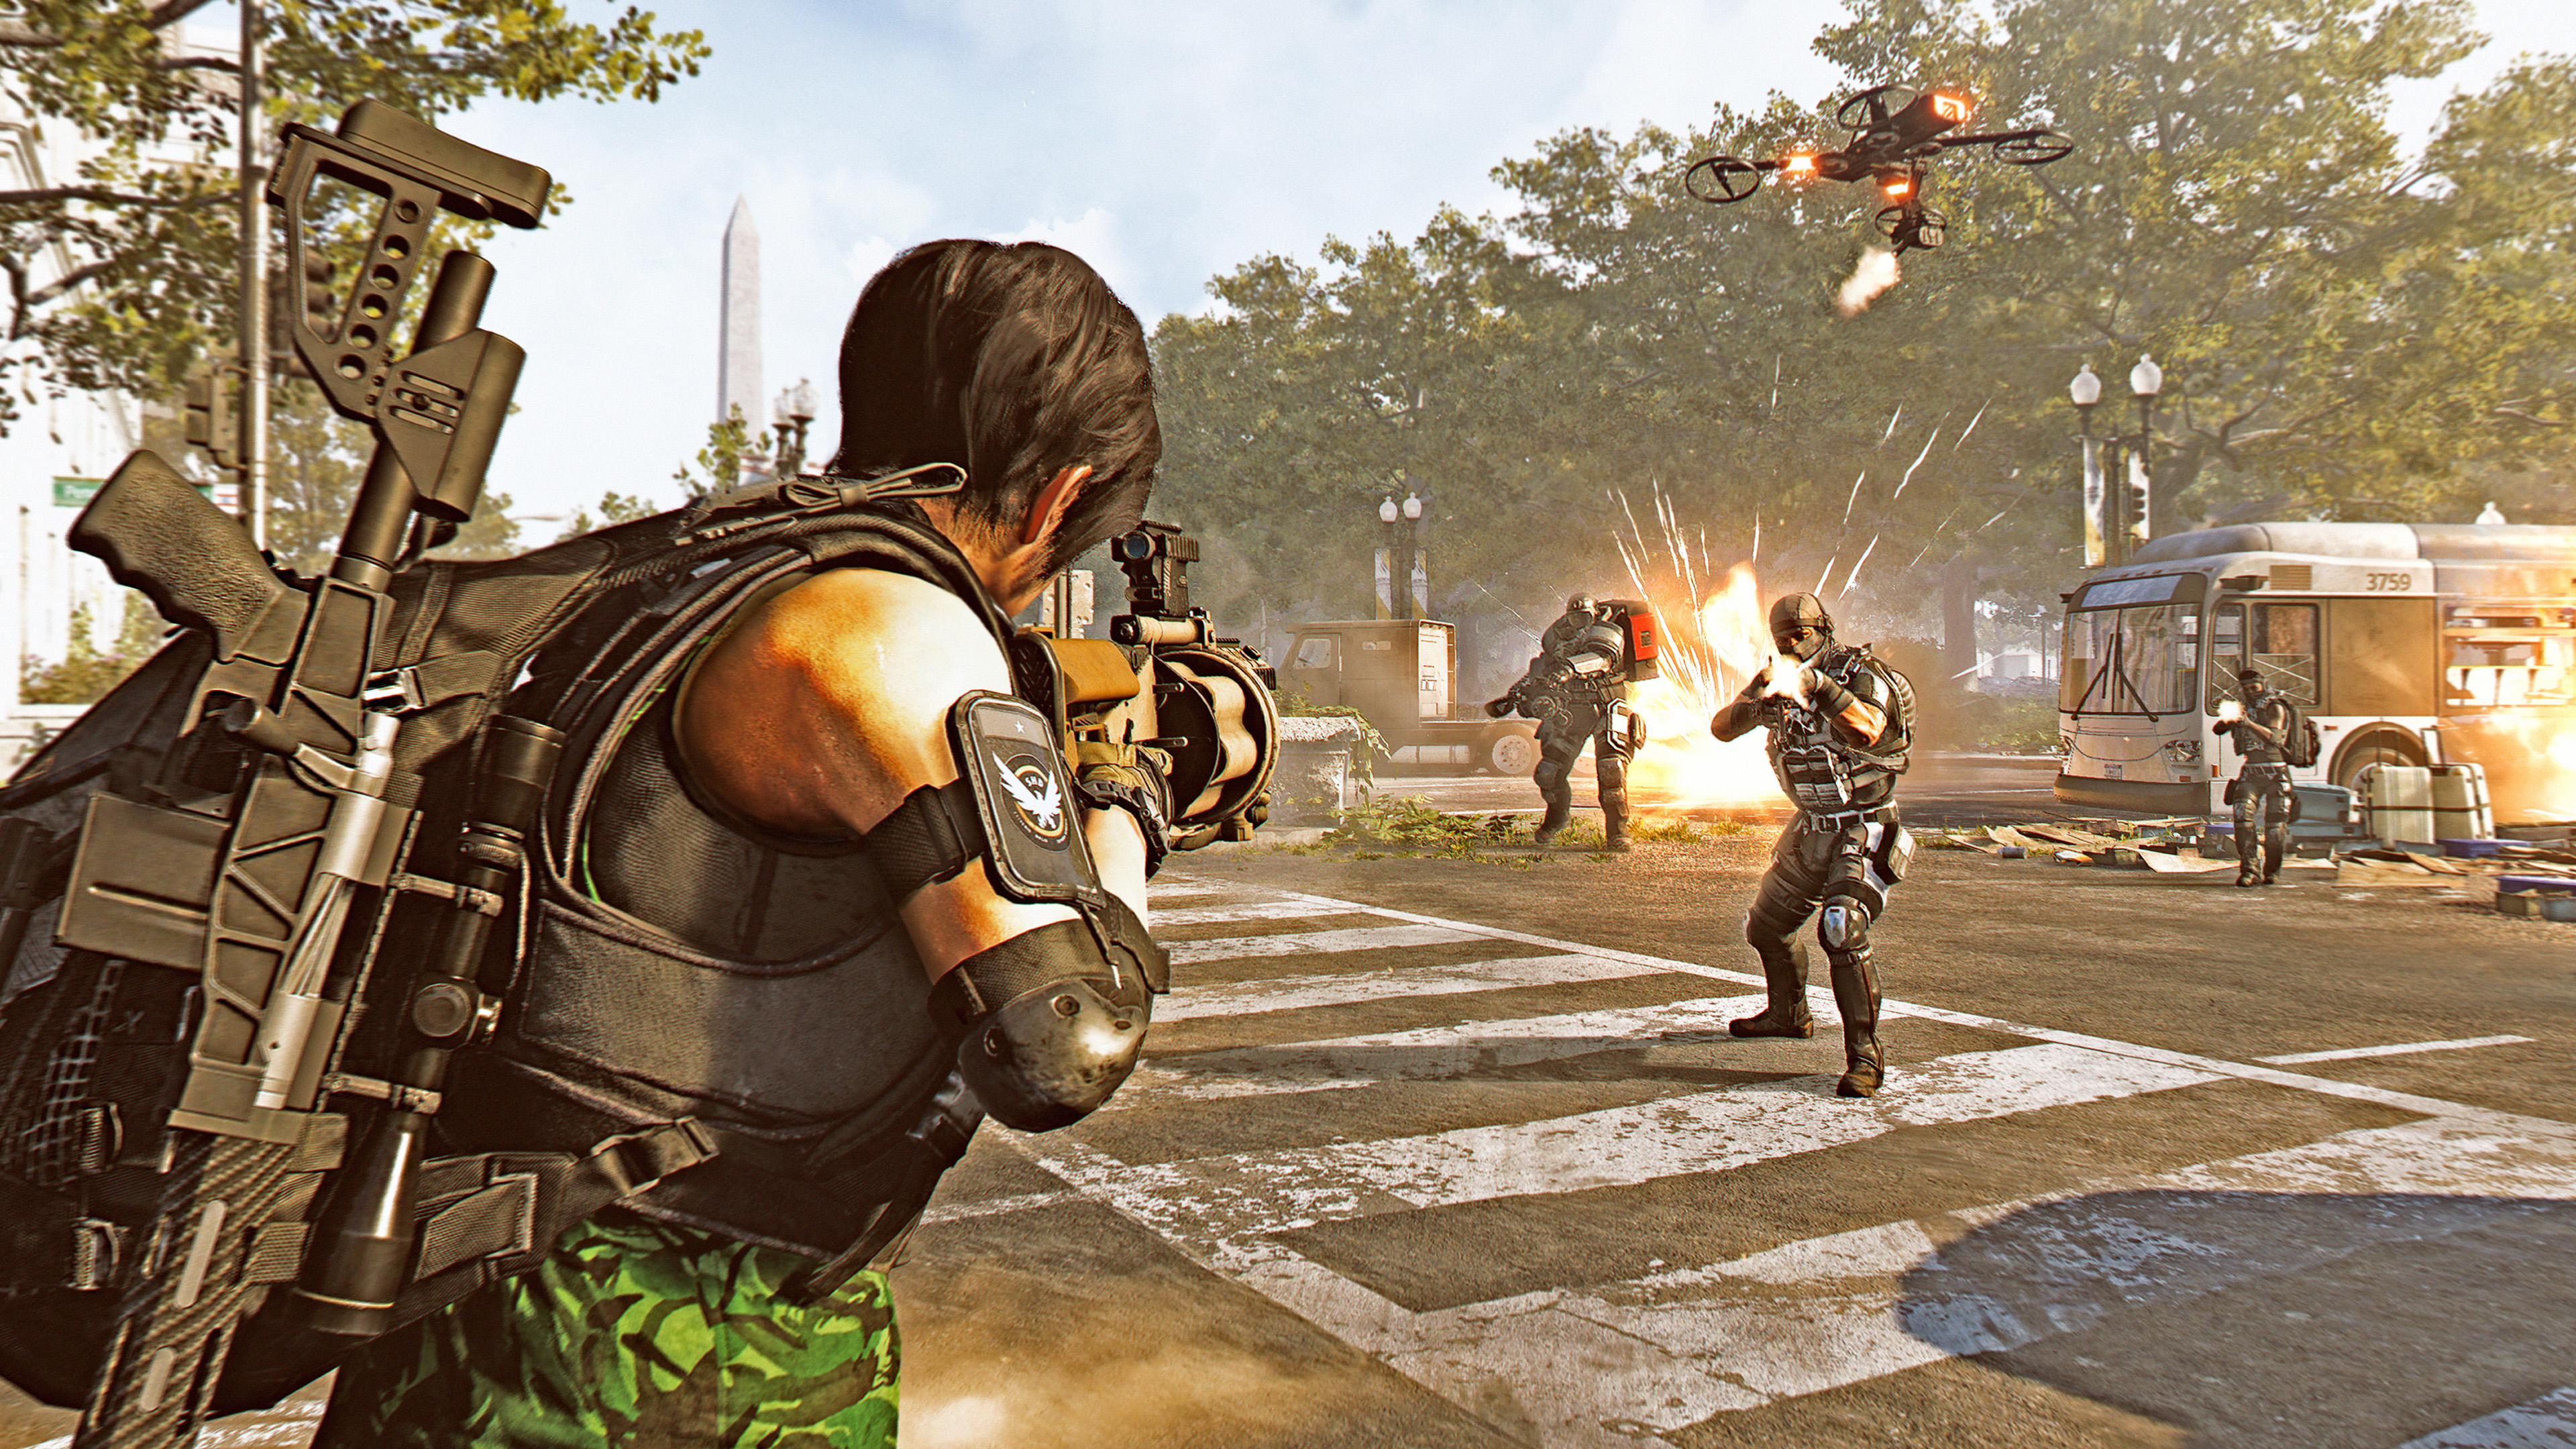 The Division 2's endgame introduces a powerful new faction that